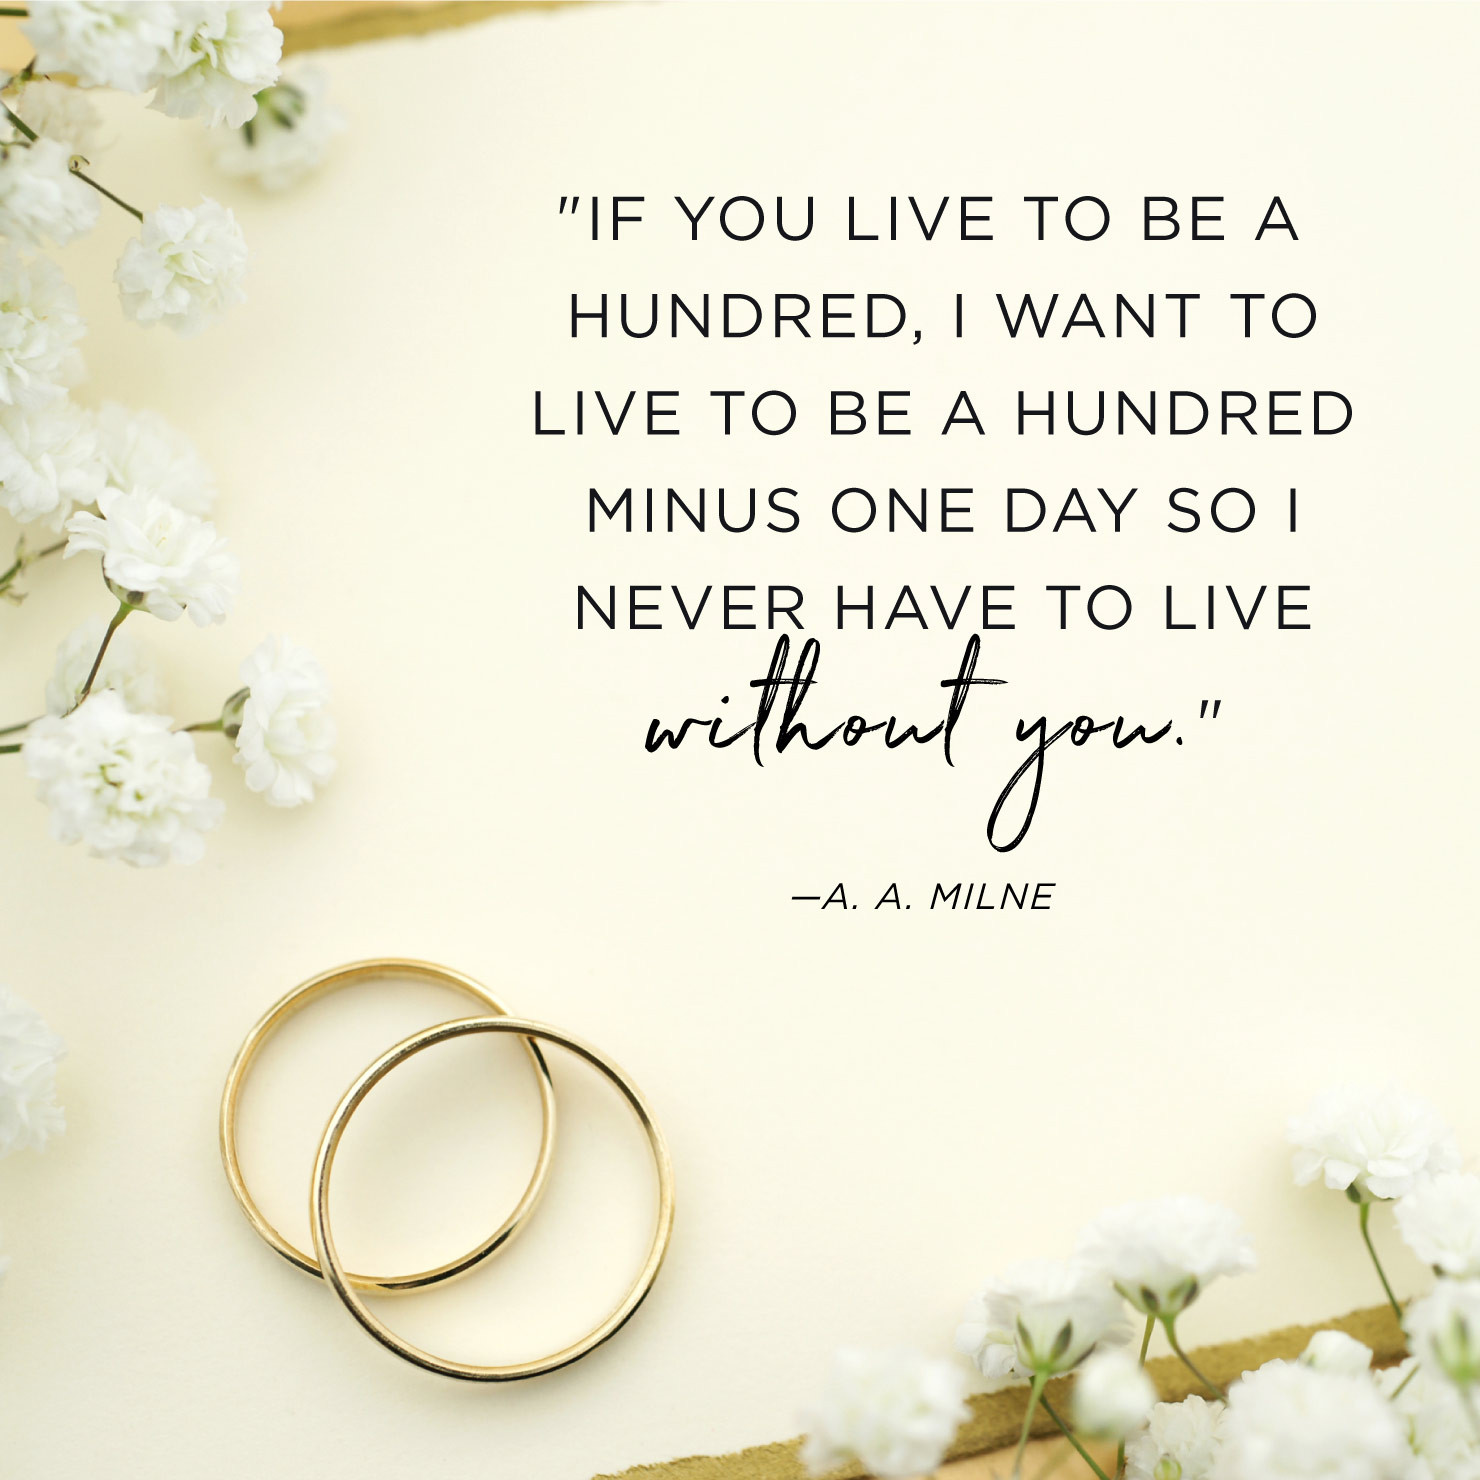 Best Wedding Anniversary Quotes  60 Happy Anniversary Quotes to Celebrate Your Love